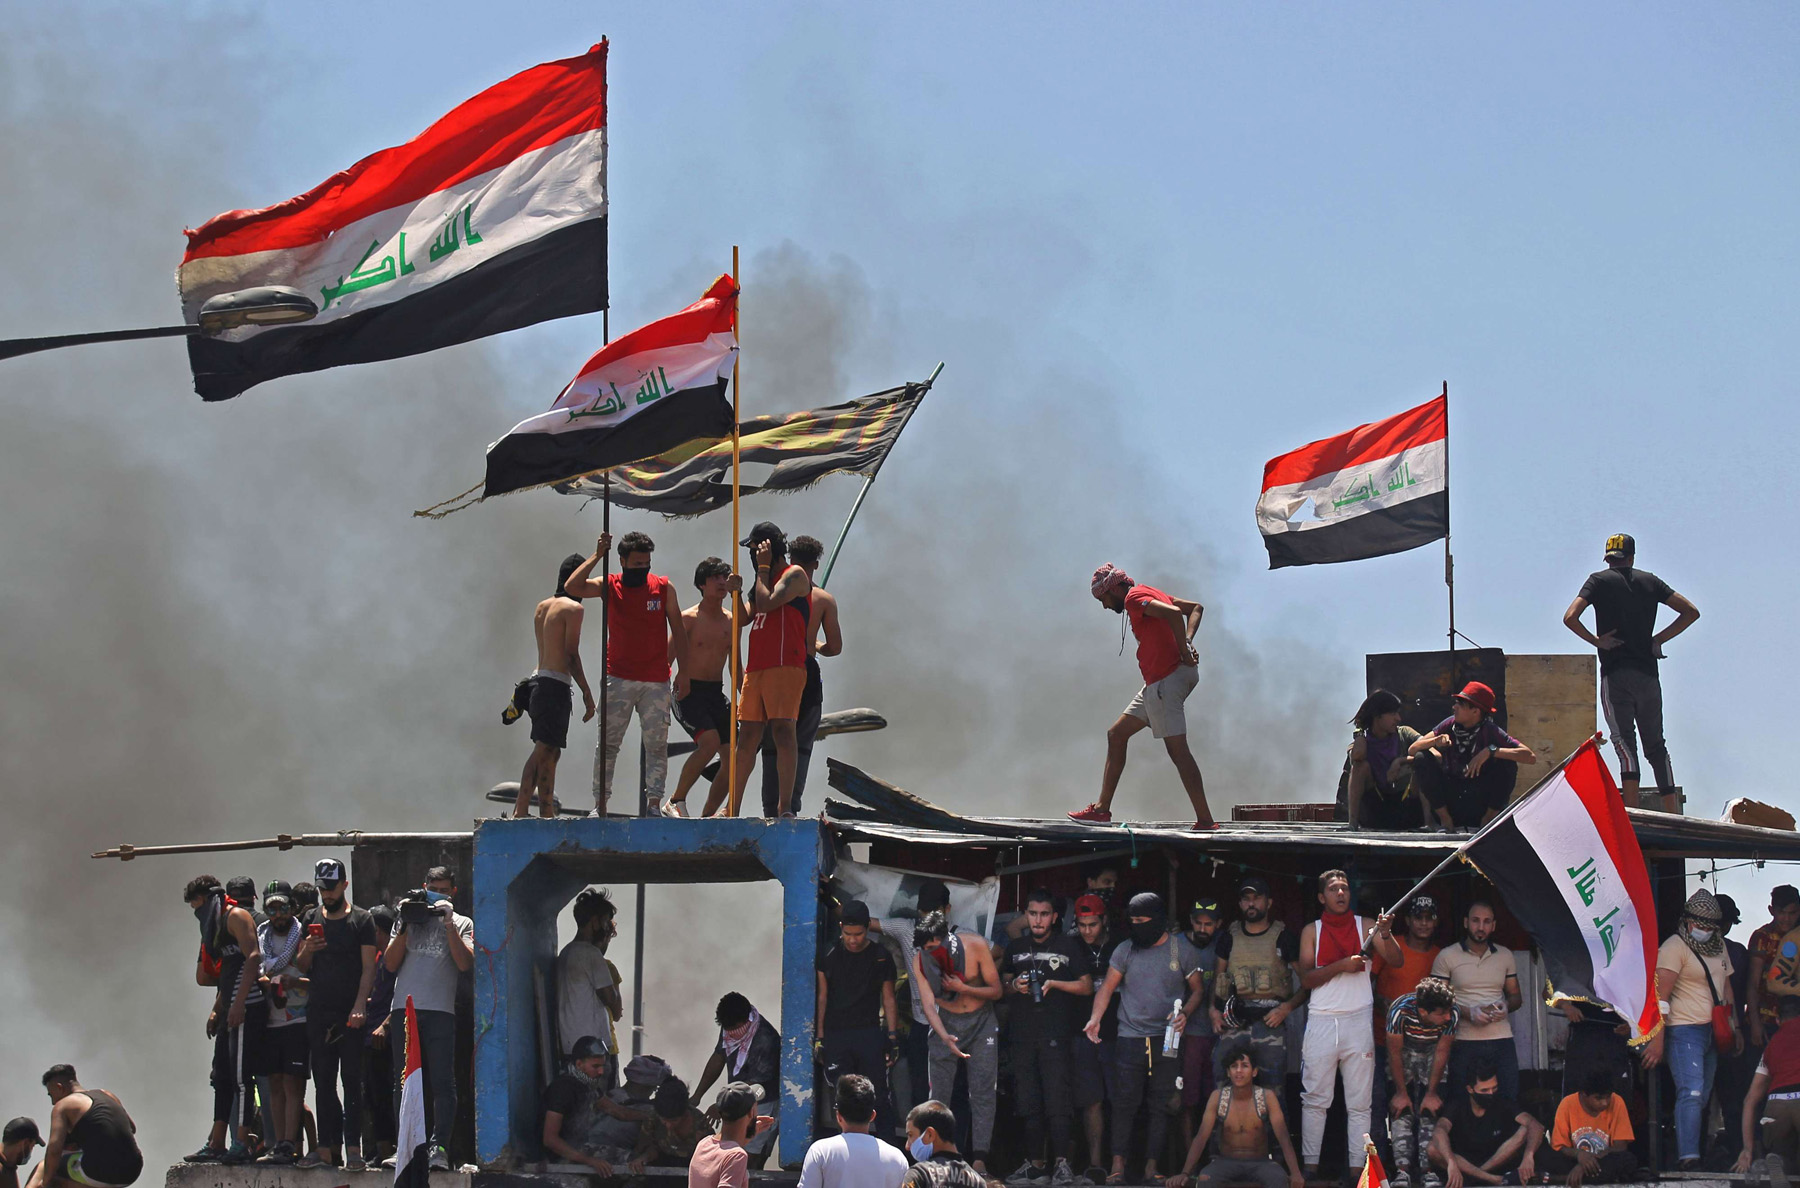 Iraqi protesters raise national flags as they clash with security forces on Al-Jumhuriyah bridge in the capital Baghdad. (AFP)